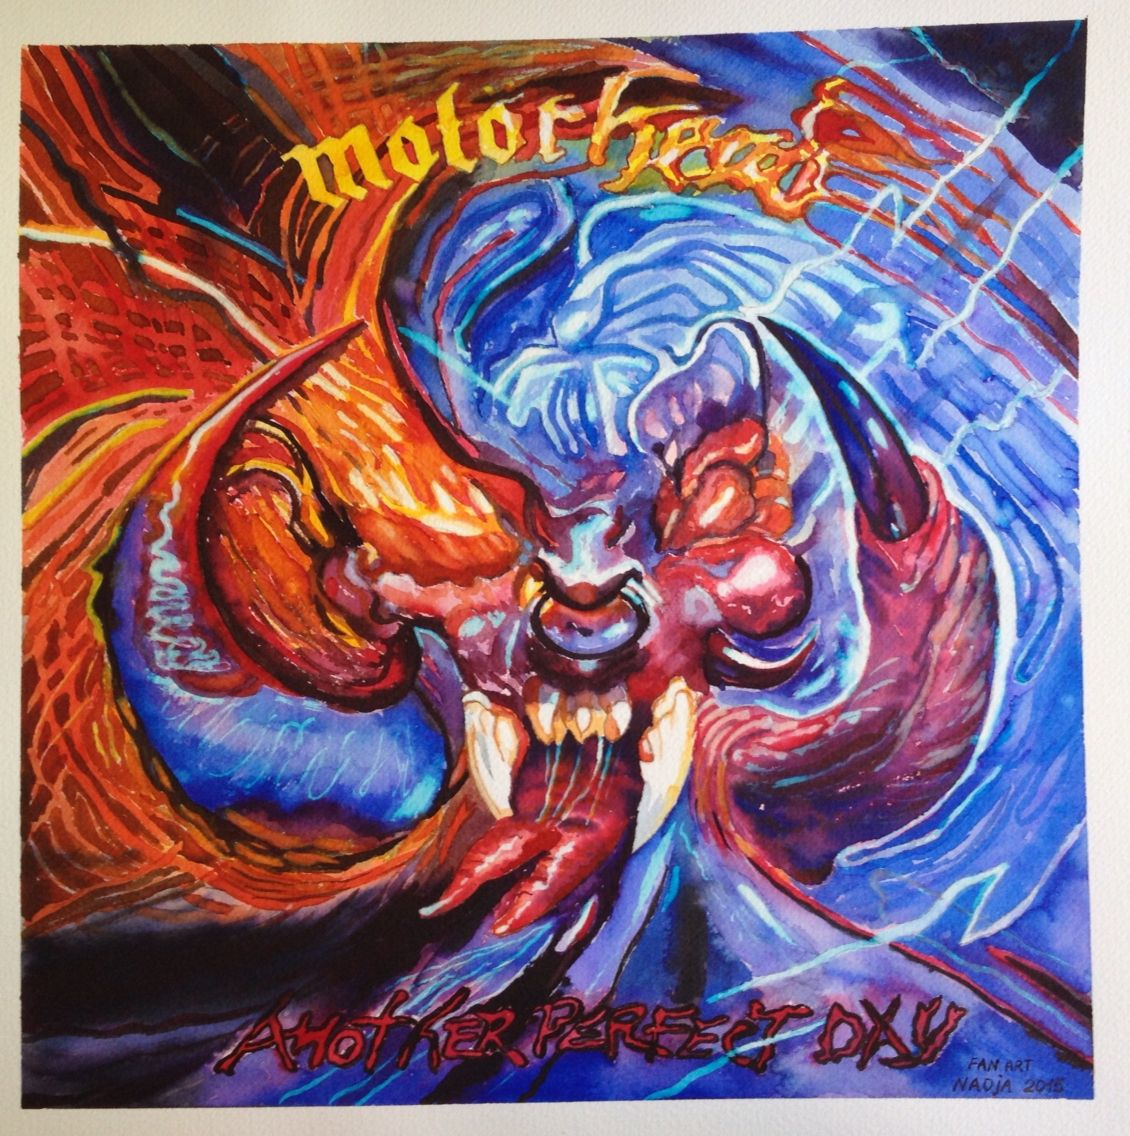 Motörhead - Another Perfect Day. Fan Art painting done in ...